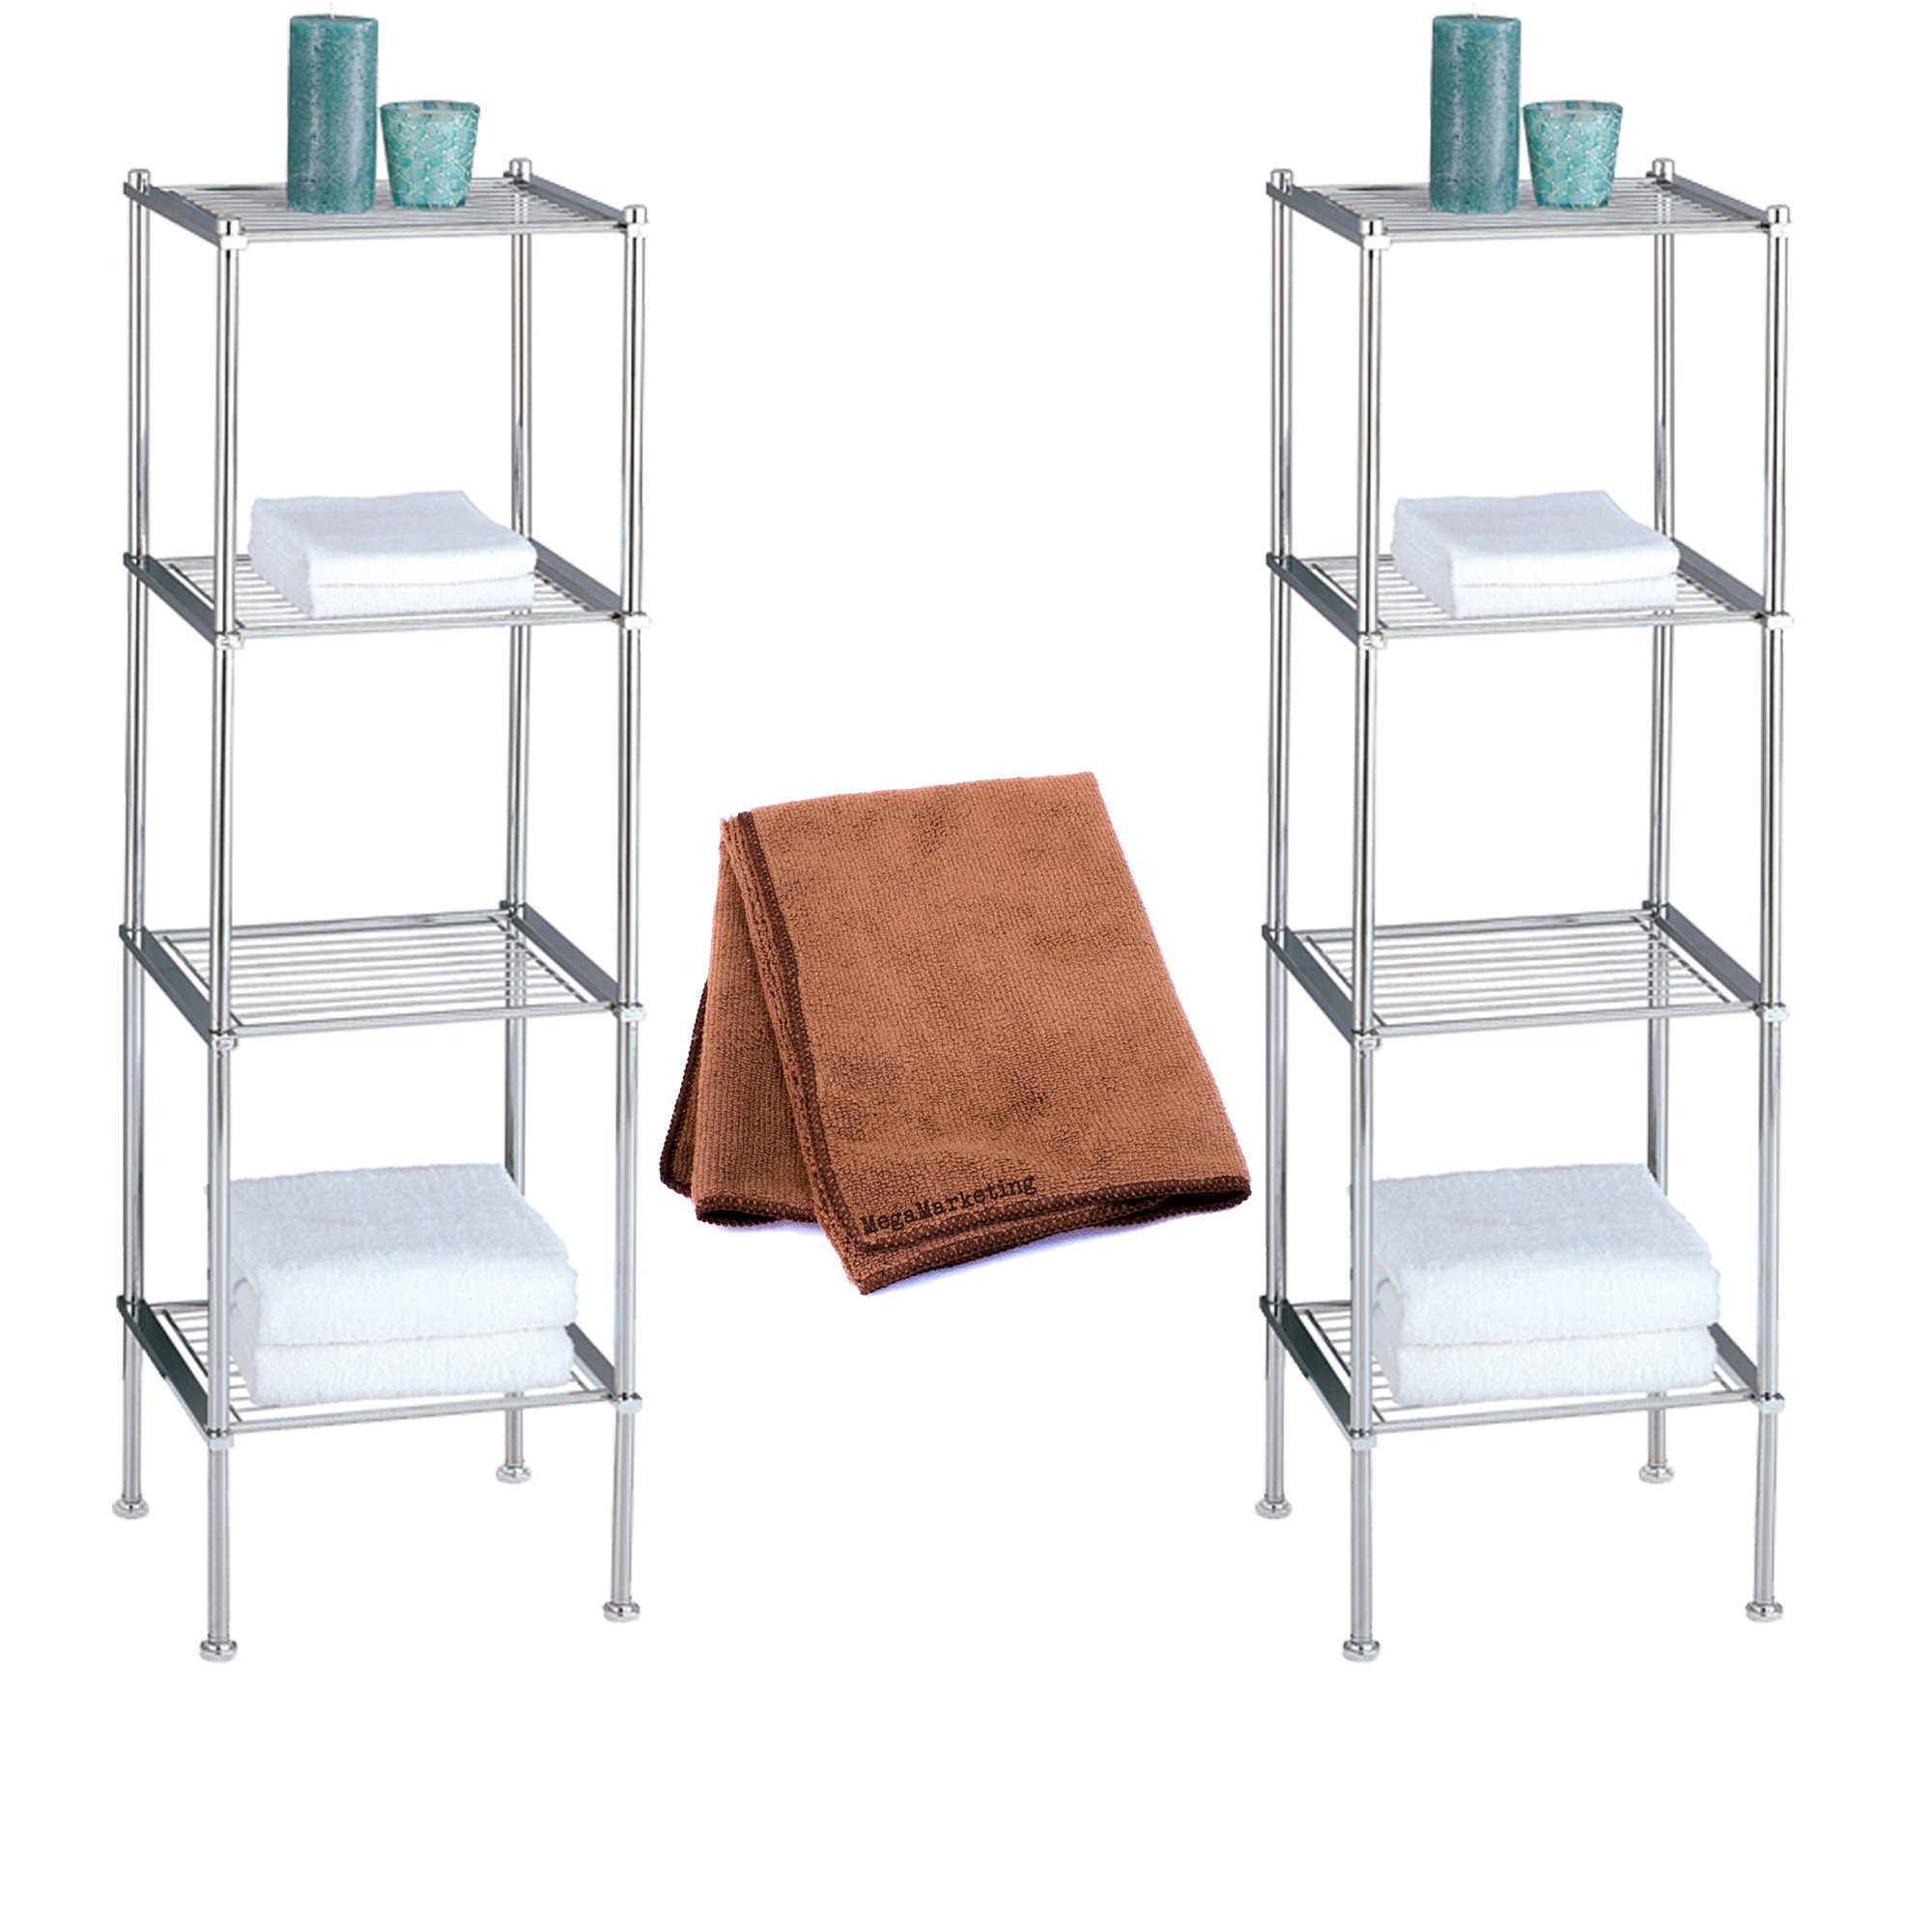 Organize It All Metro 4-Tier Shelf, 2-Pack with Cleaner Cloth